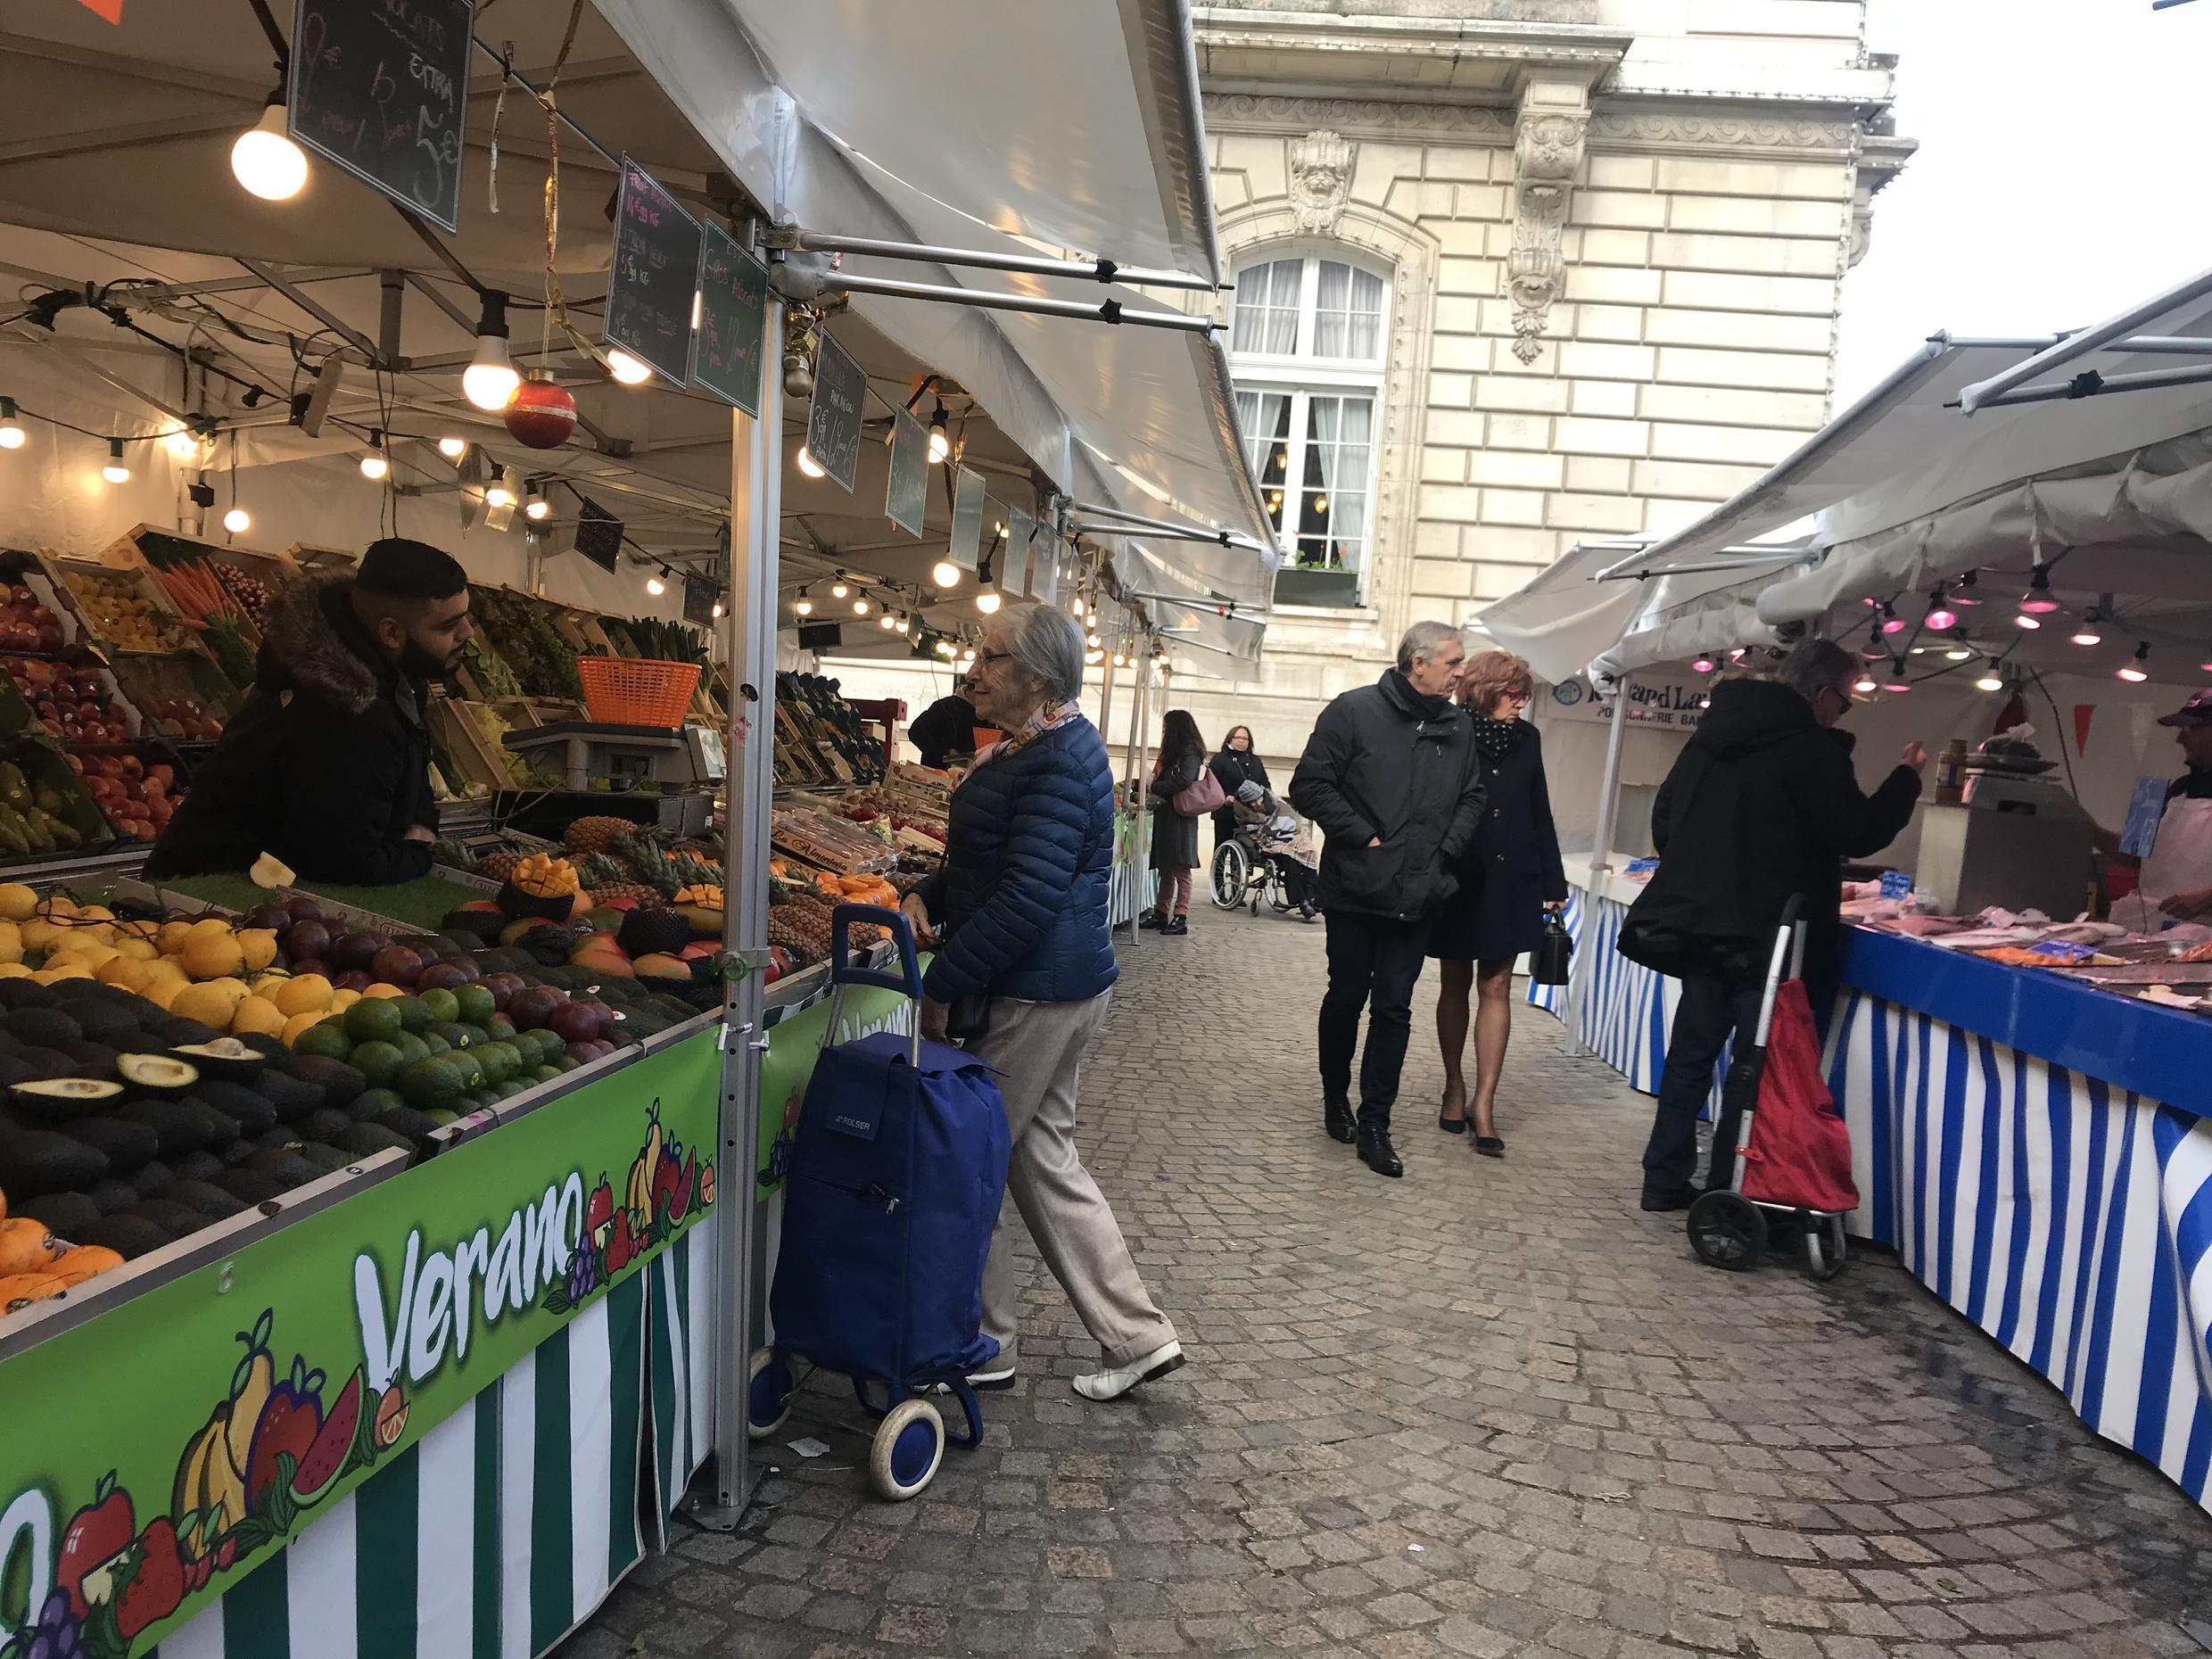 The Friday farmers market in the upscale town of Levallois-Perret, west of Paris.